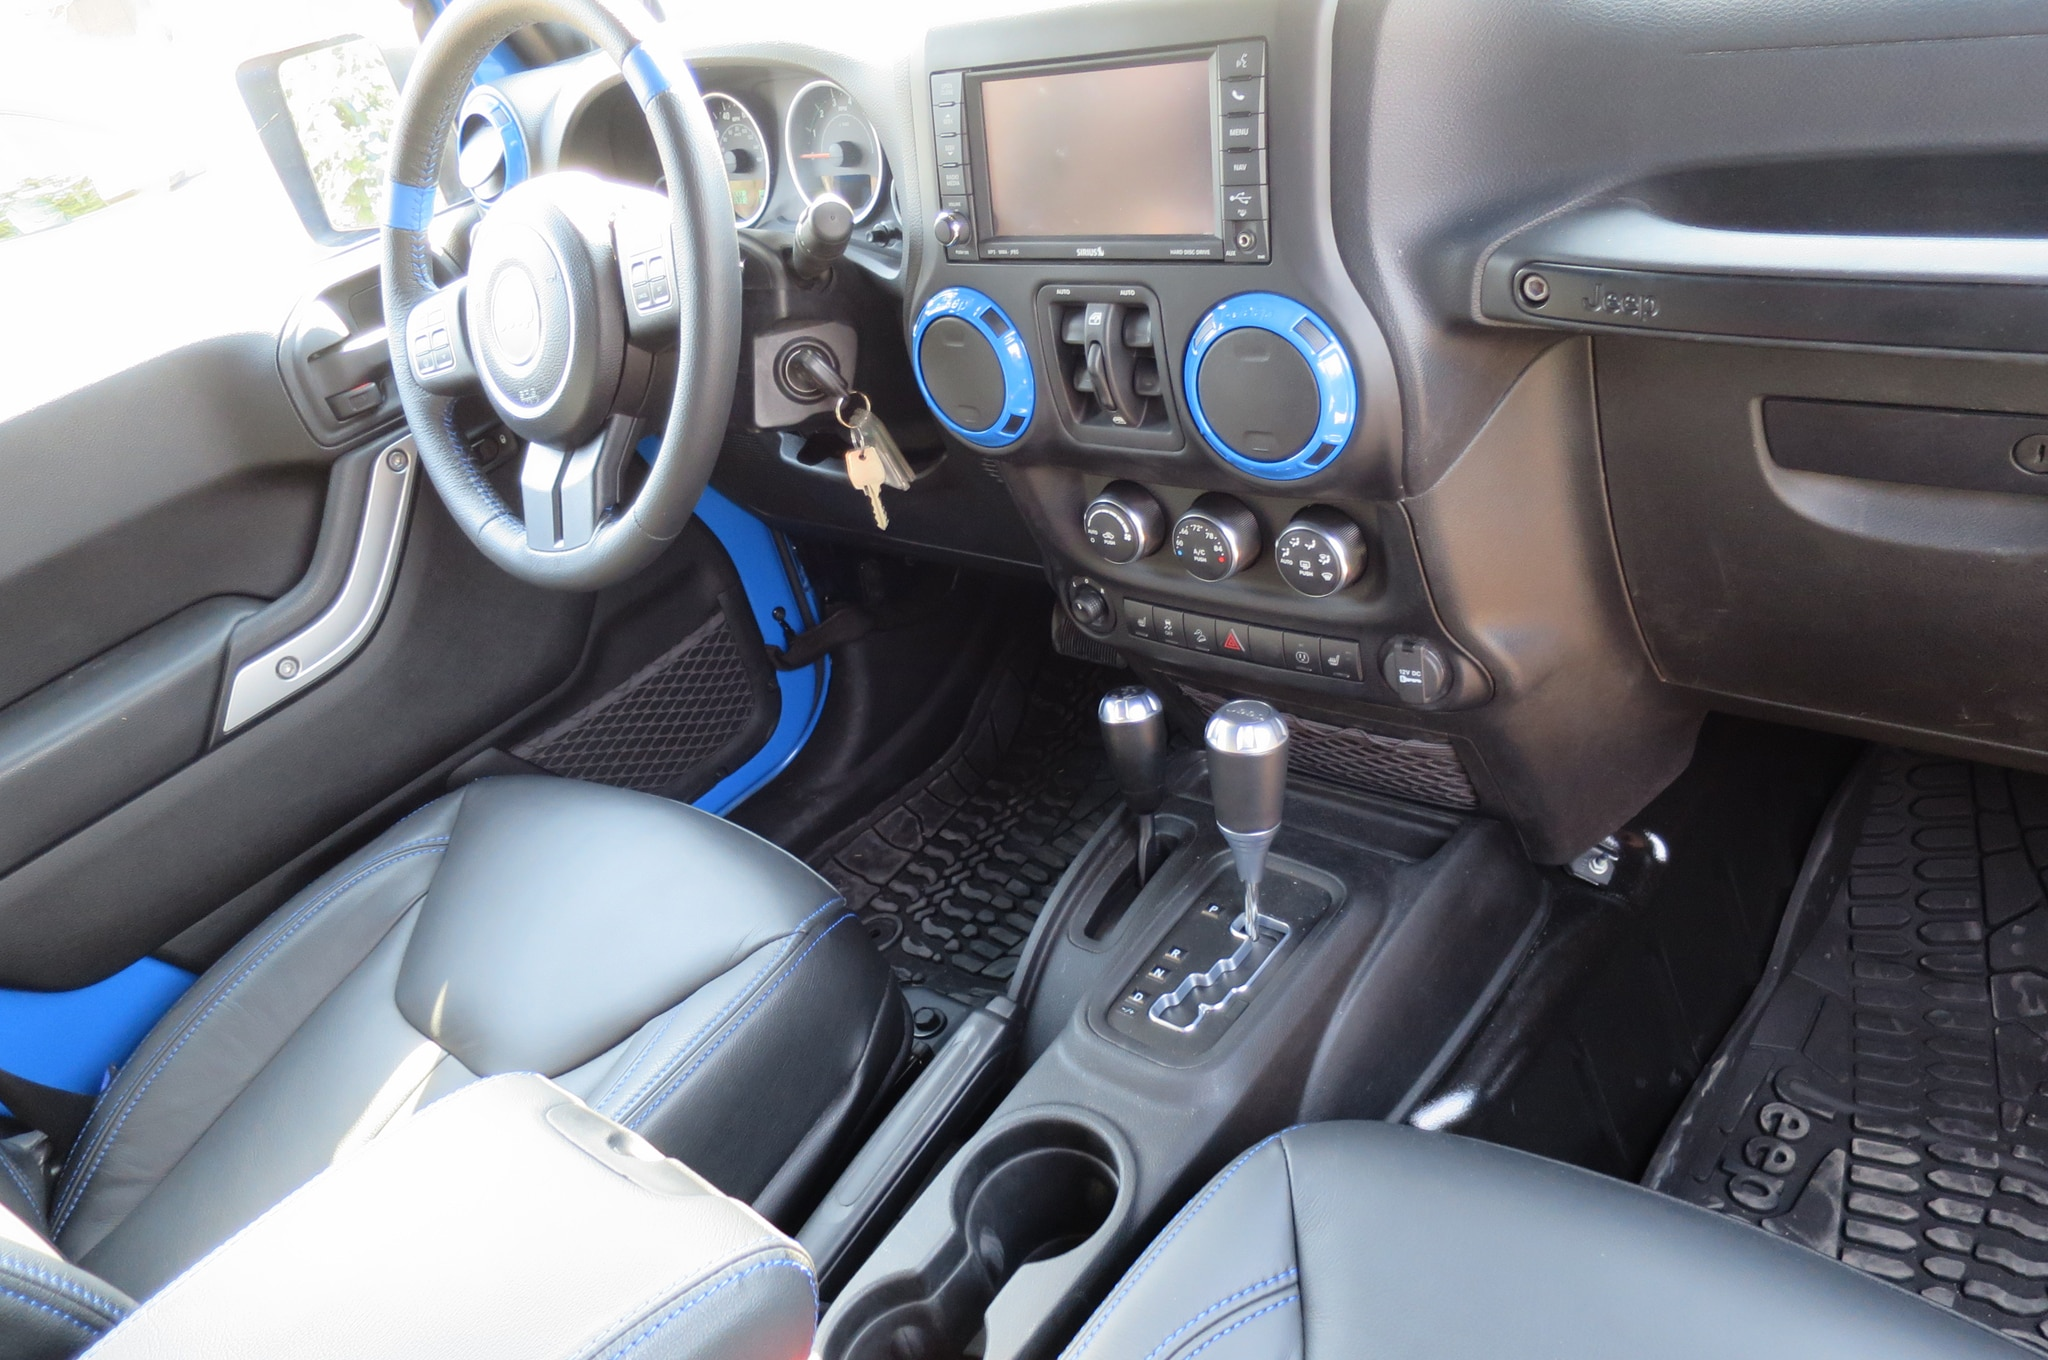 Jeep Wrangler Maximum Performance Concept interior view